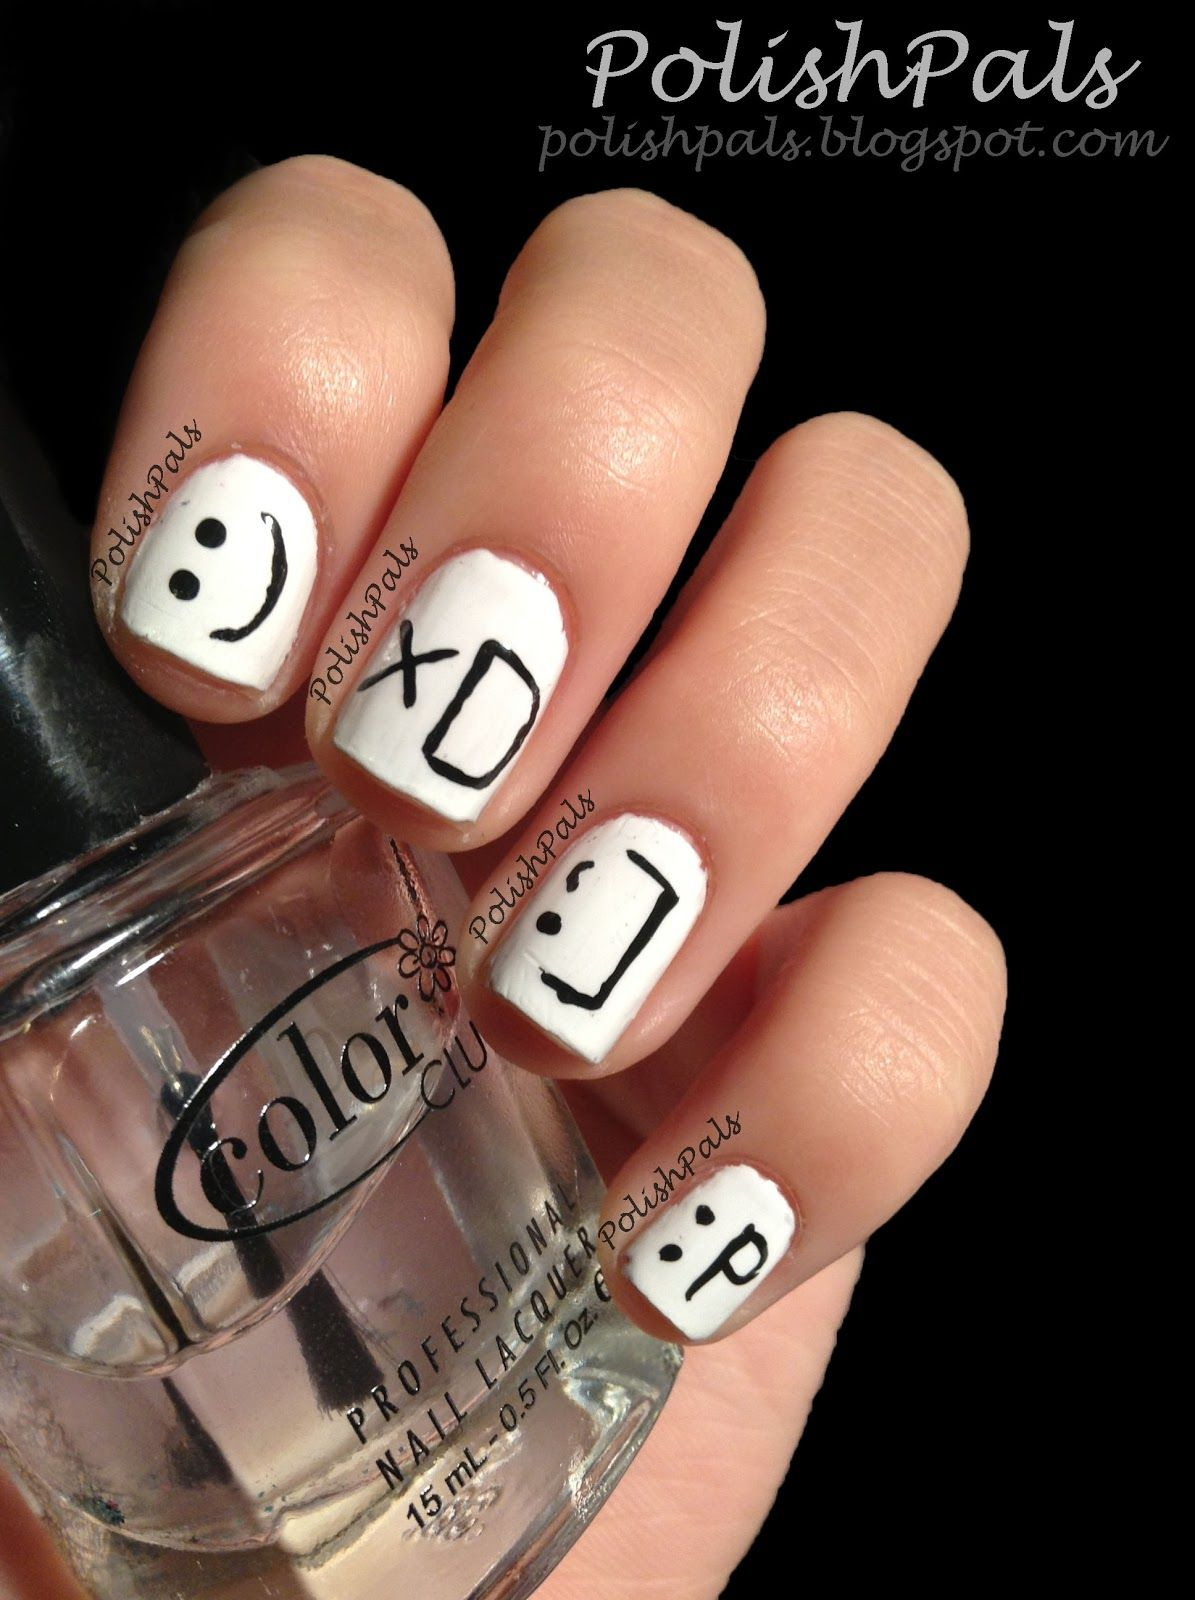 Smiley Face Nails Too Cute Xd P Nails Simple Tattoos For Guys Nail Designs